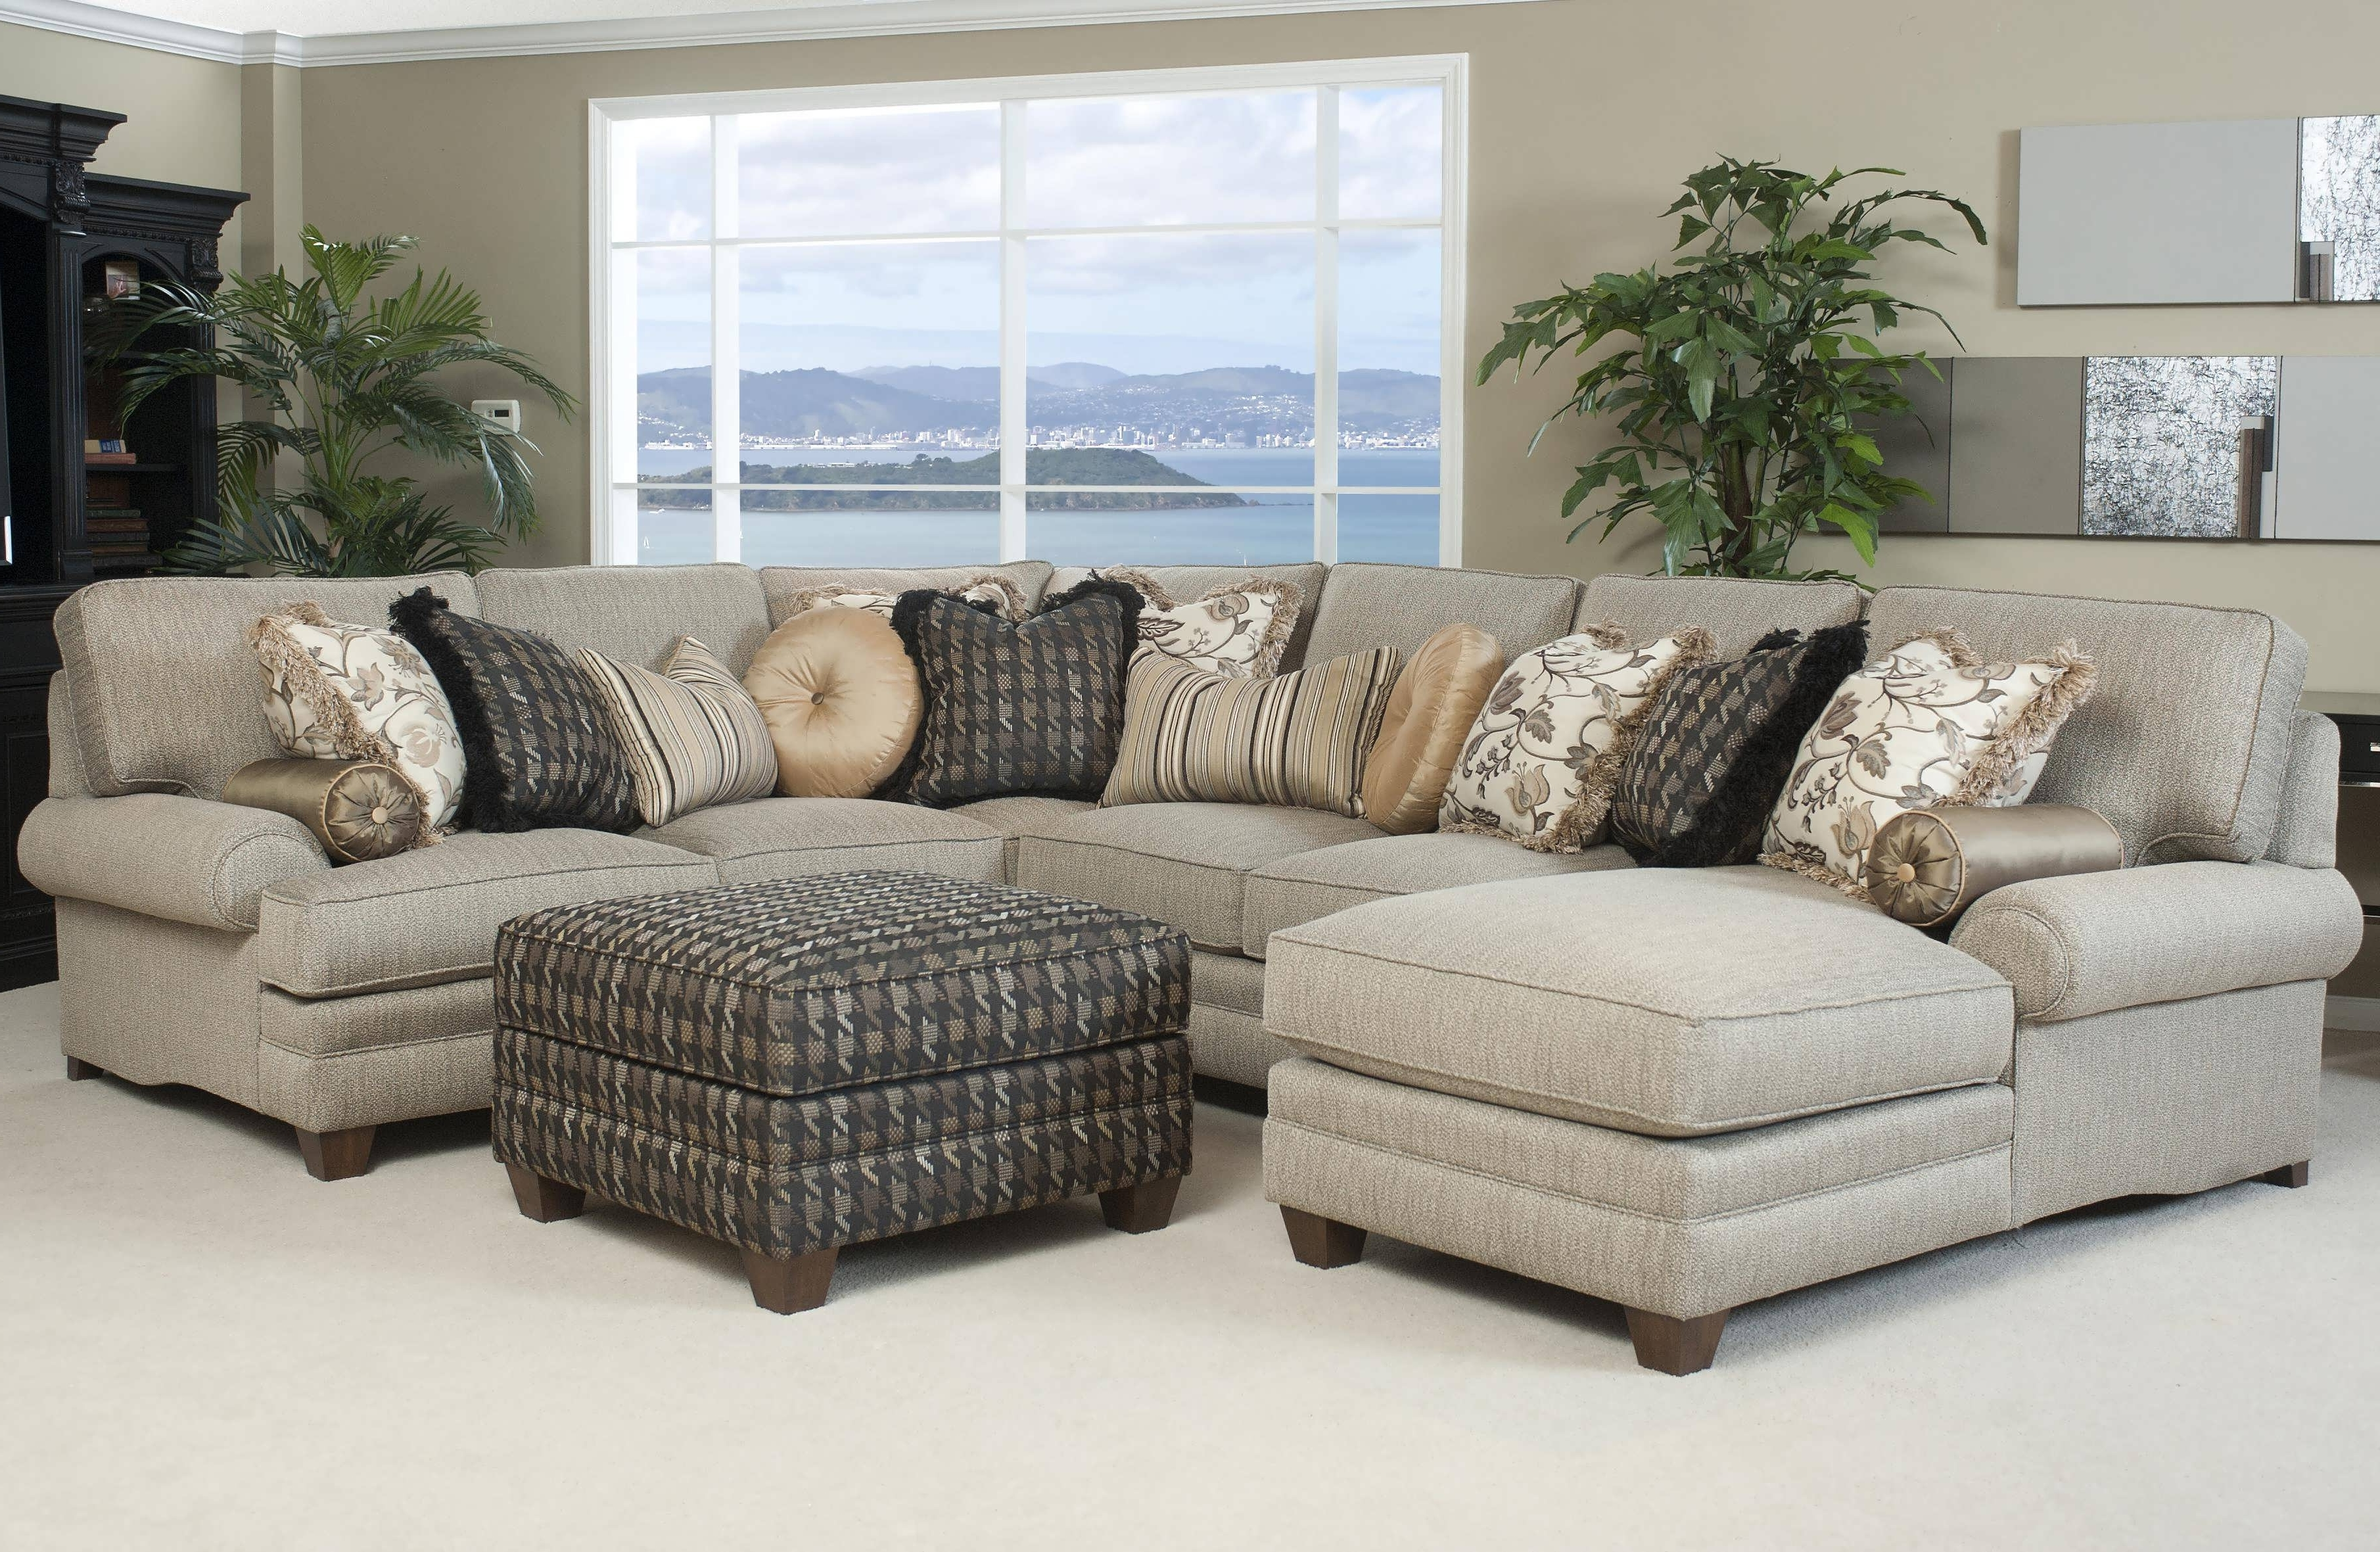 Best And Newest Sofa : Sectional Leather Sectional Sofas And Sectionals Leather For Sofa Chaise Sectionals (View 5 of 15)